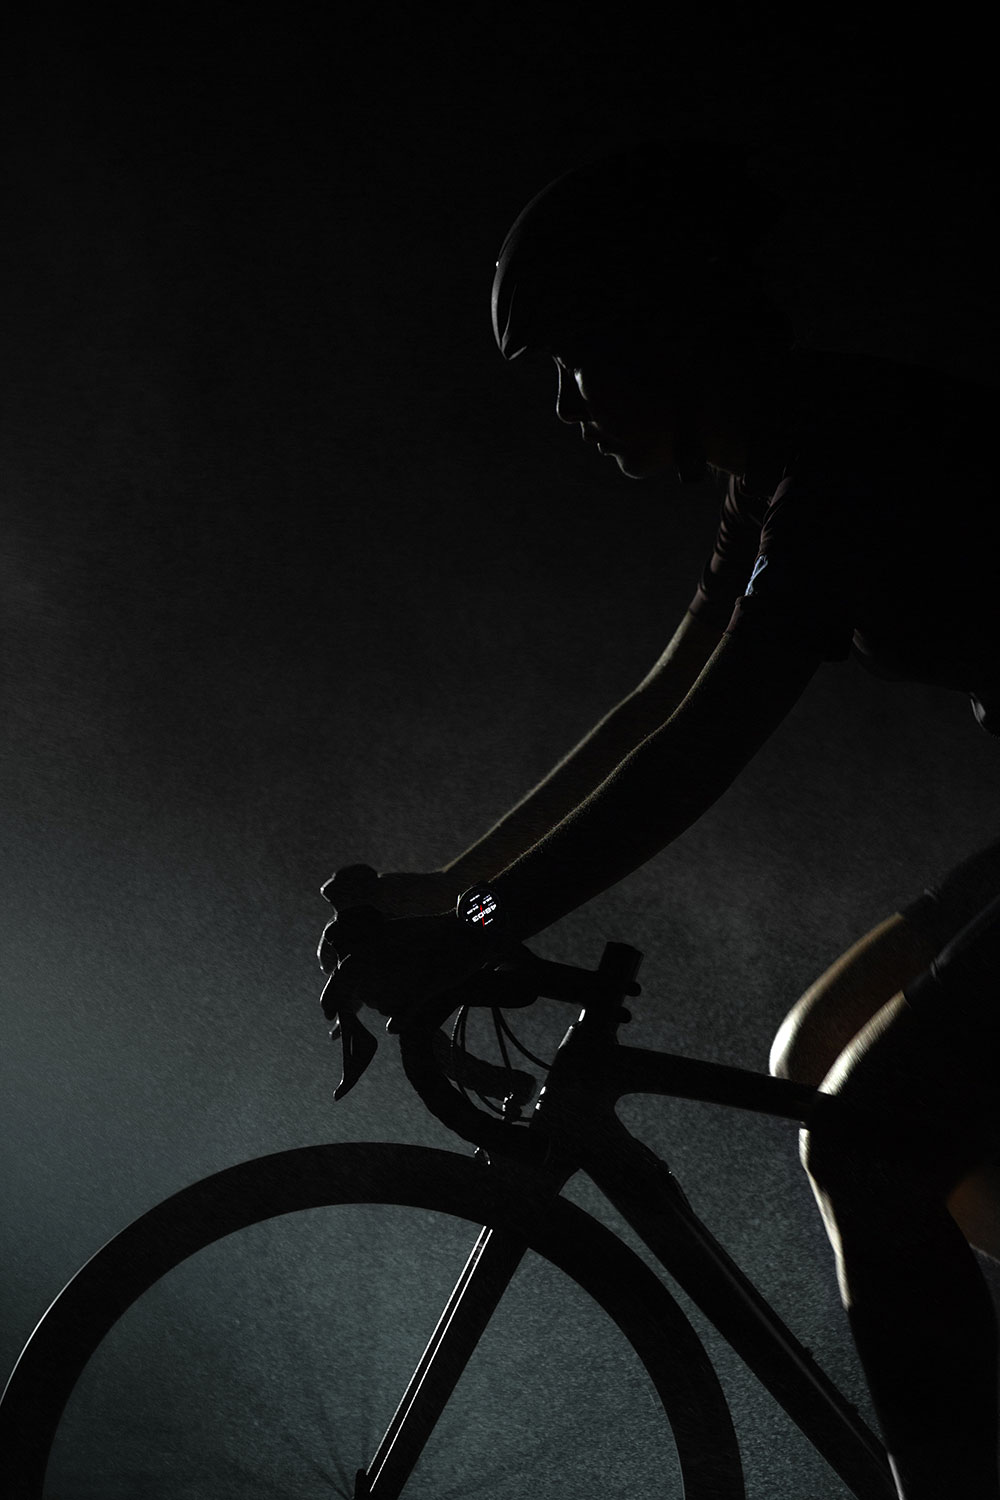 El TAG Heuer Connected 2020, en bicicleta